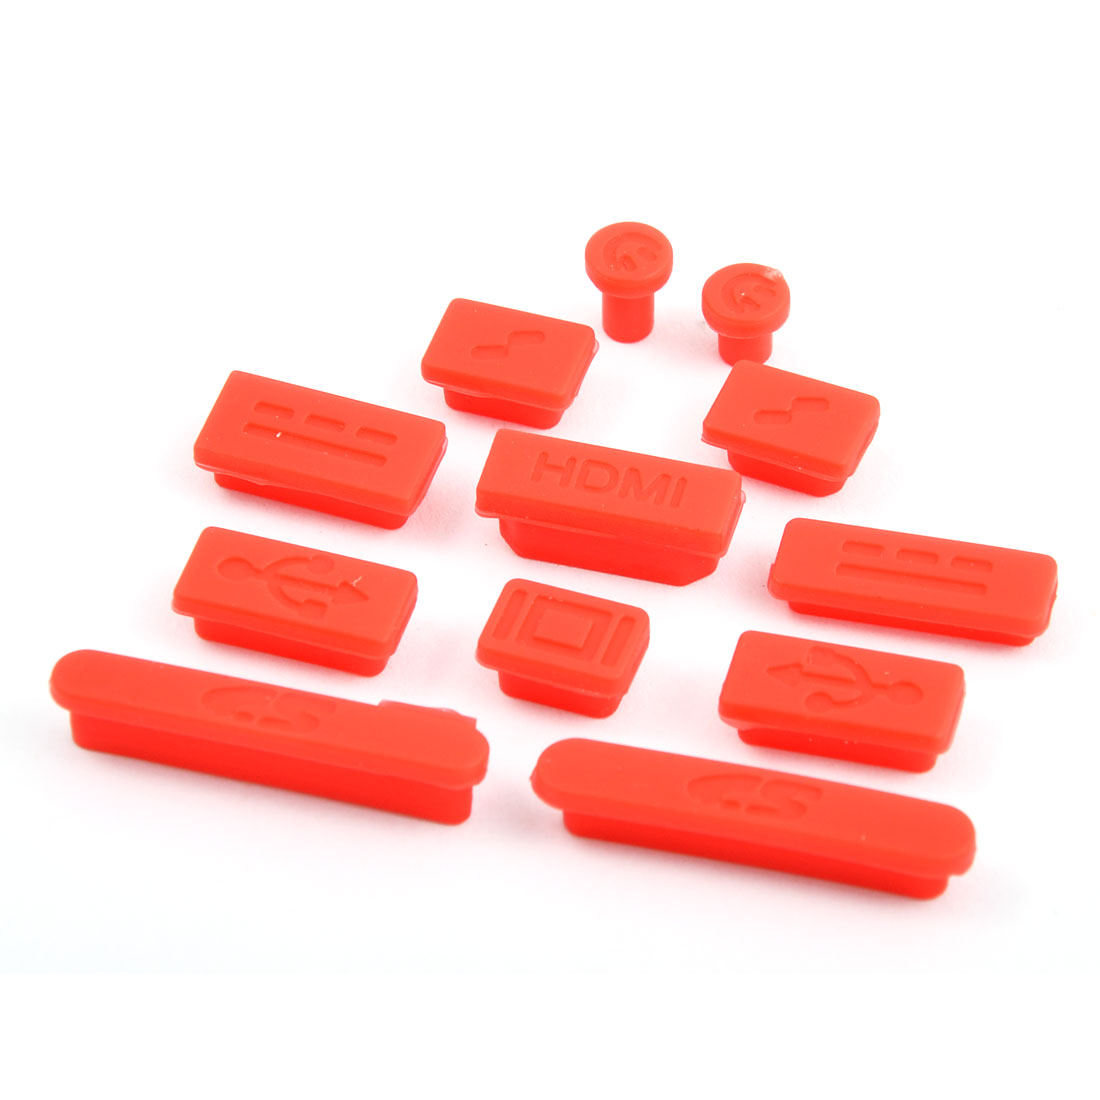 PC Computer Silicone Anti-Dirt Laptop Anti Dust Connector Cap Set Red 12 in 1 for Macbook Retina